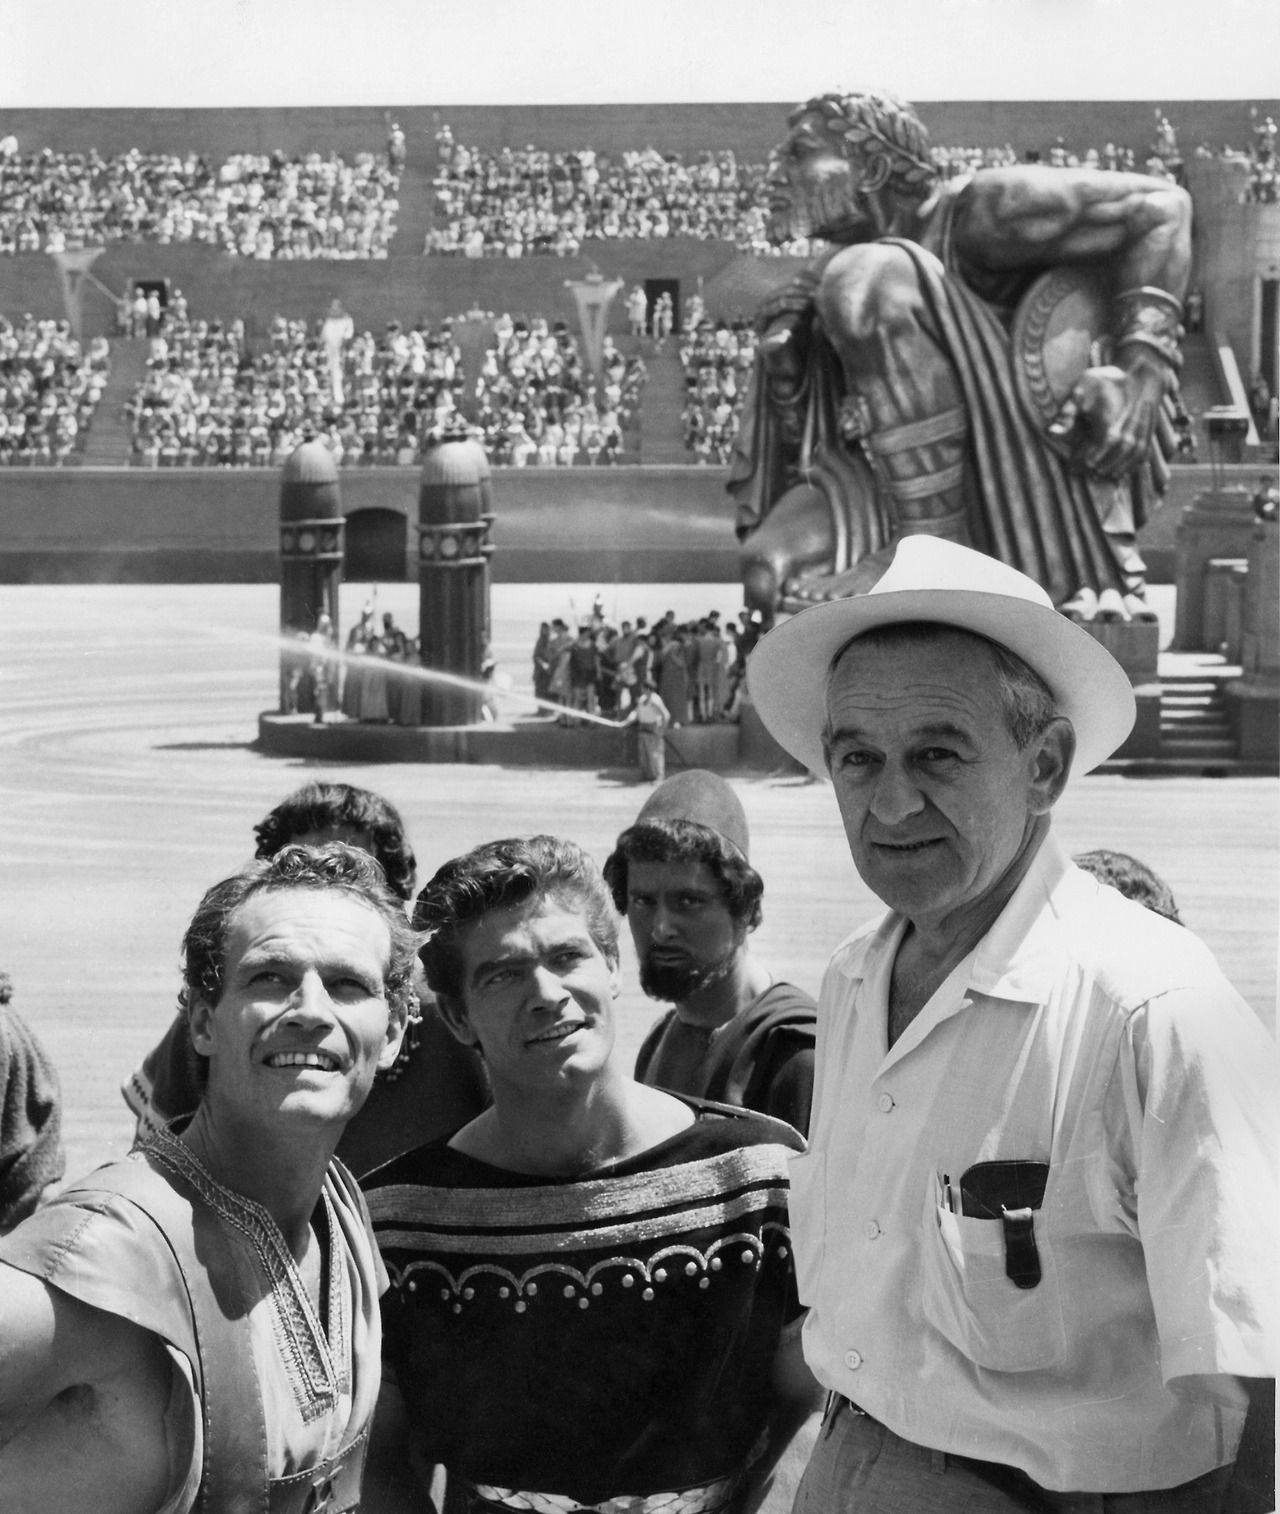 Charlton Heston, Stephen Boyd and William Wyler on the set of Ben-Hur (1959) #benhur1959